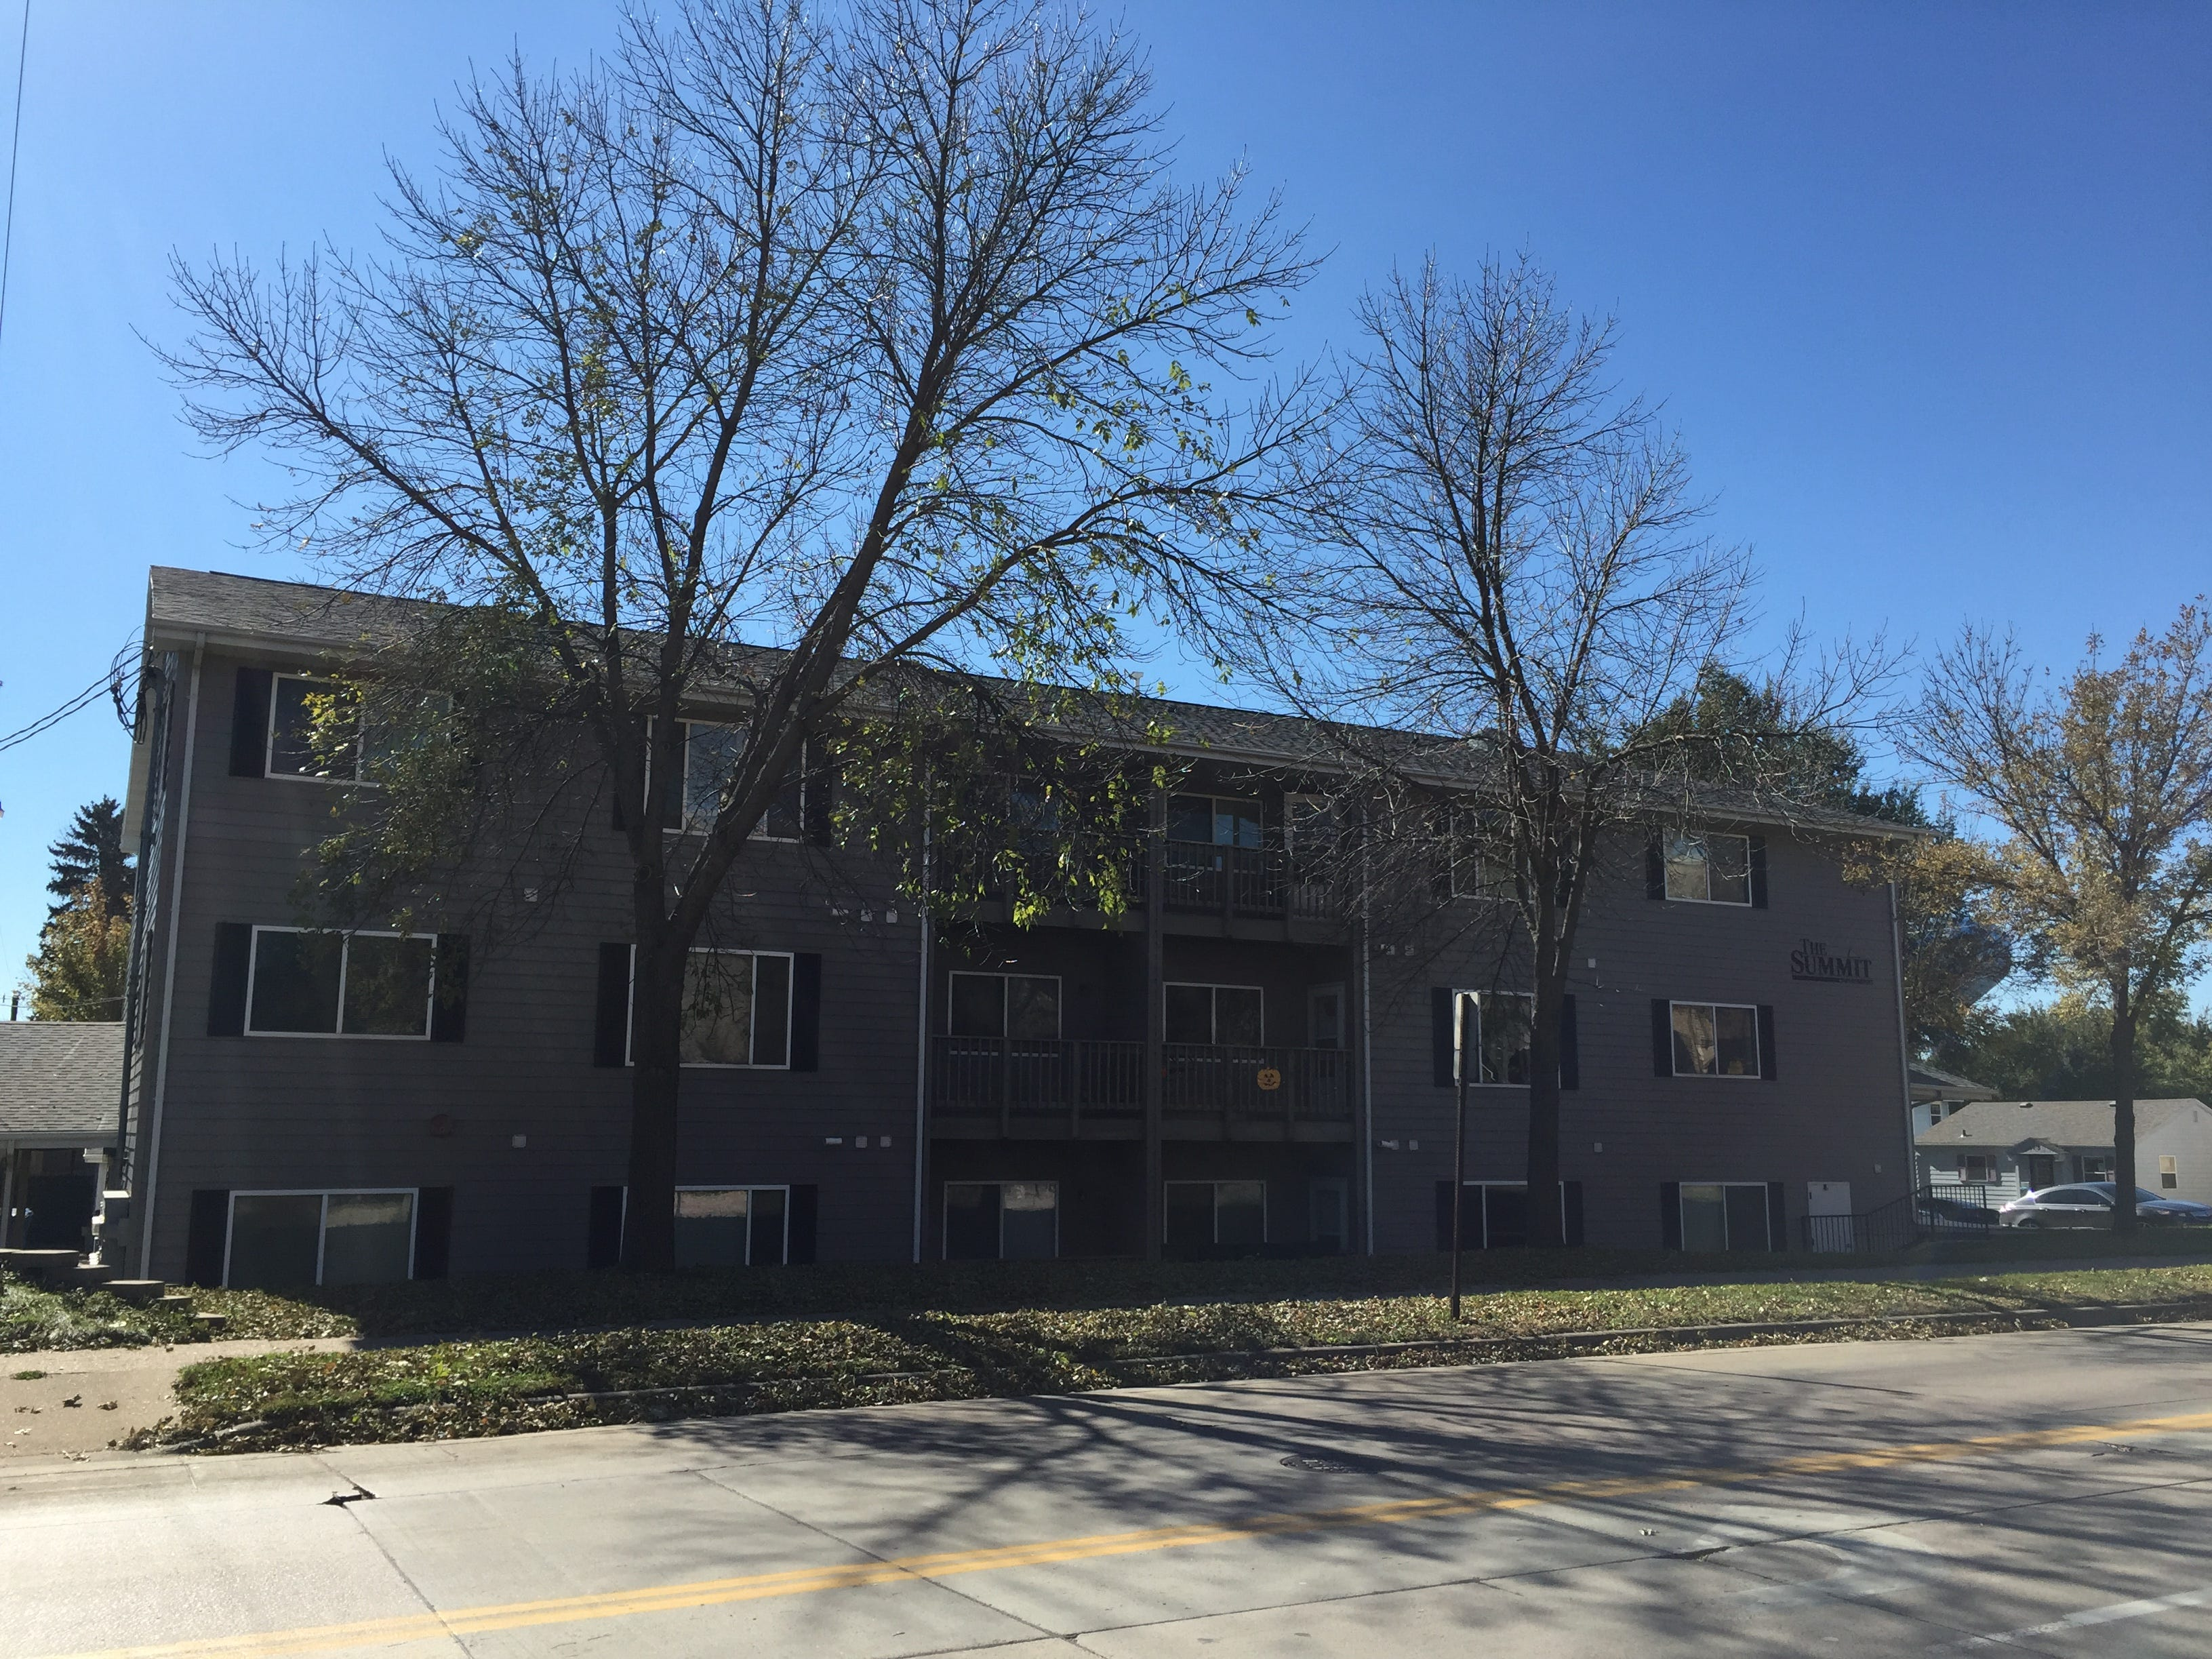 The Summit apartments, located in the 1000 block of S. Summit in Sioux Falls, acquired by Miami-based Tzadik Management.